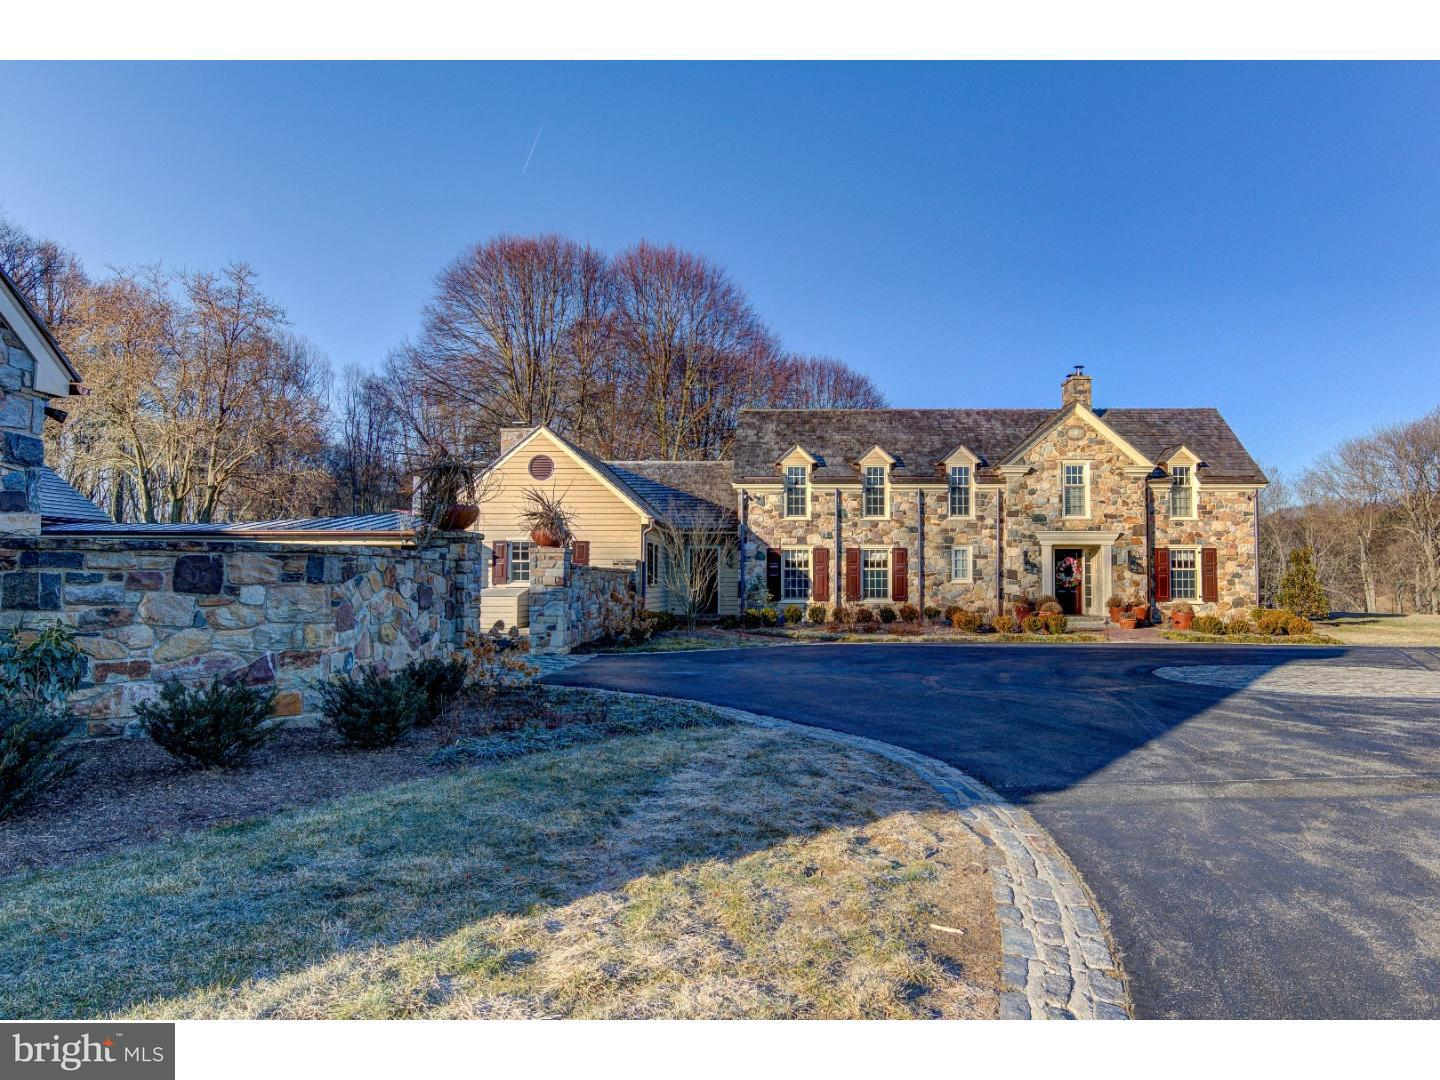 1151 STOCKFORD RD, CHADDS FORD - Listed at $3,900,000,